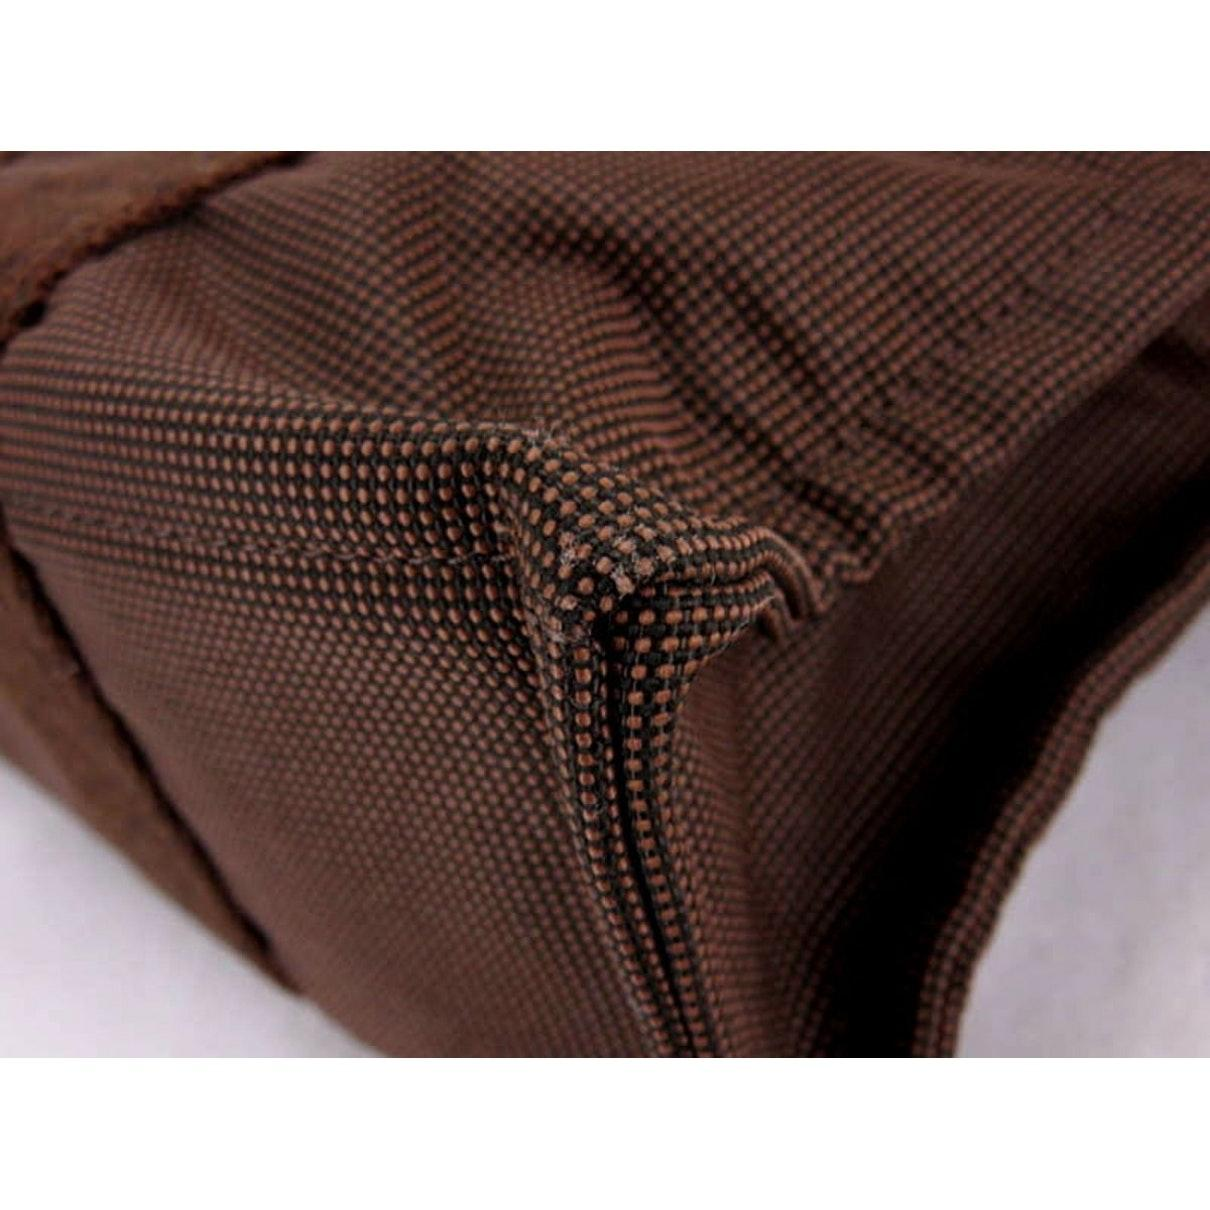 Hermès Toto Other Cloth in Brown